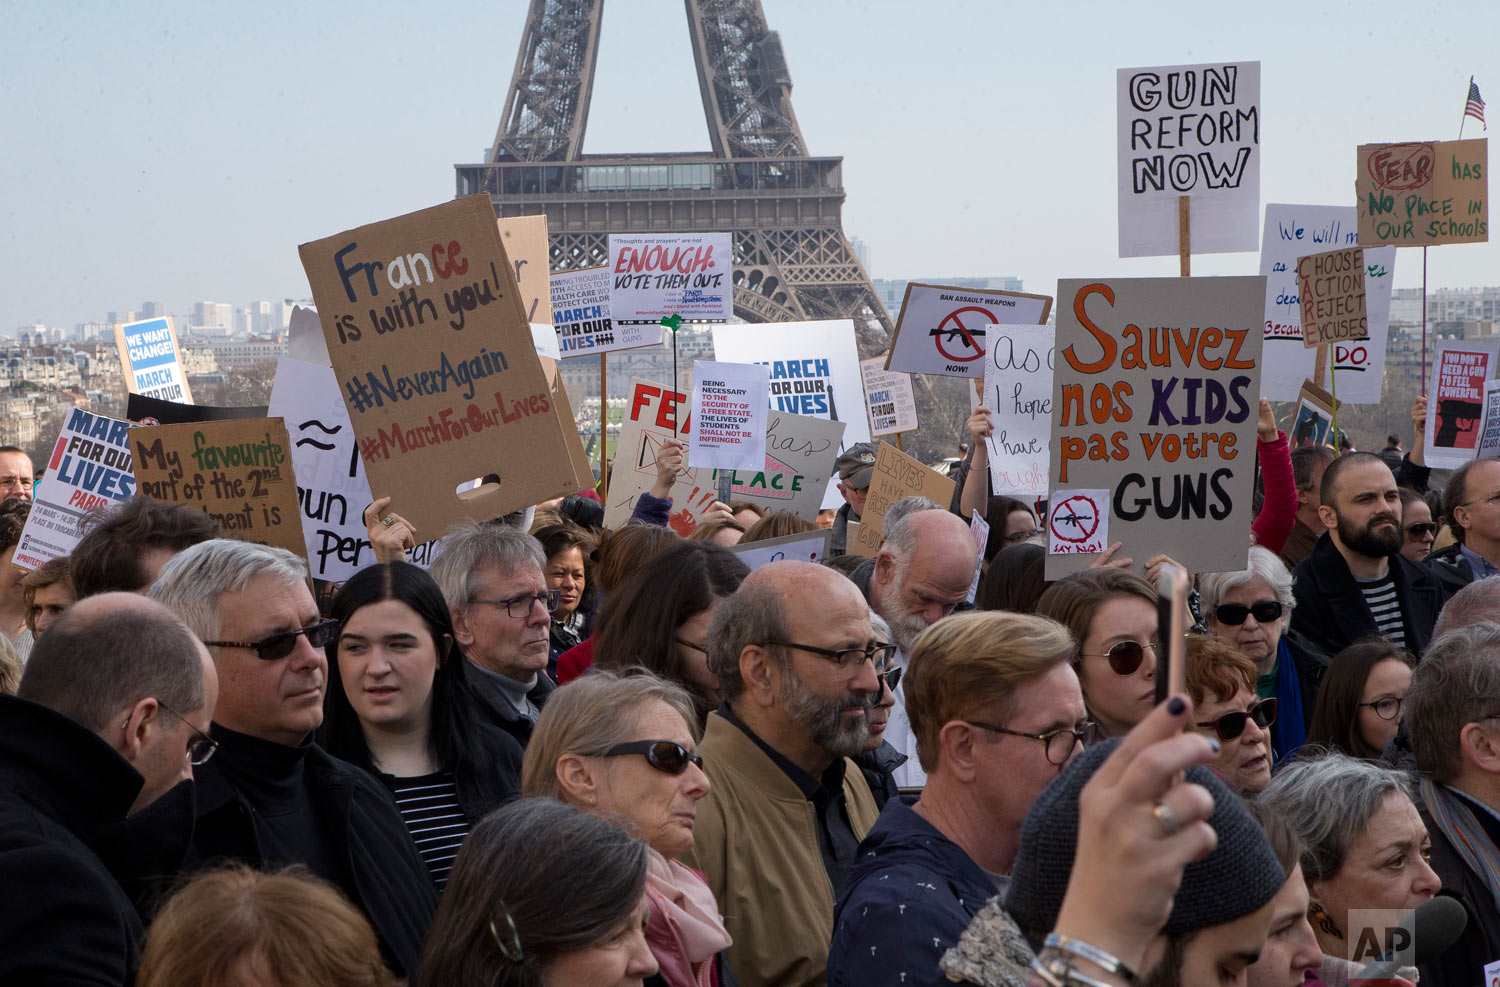 """People hold banners during the """"March For Our Lives"""" event in Paris, France, Saturday, March 24, 2018. The march is one of hundreds happening across the U.S. and the world to urge U.S. lawmakers to pass stricter gun safety legislation after deadly school shootings. (AP Photo/Michel Euler)"""